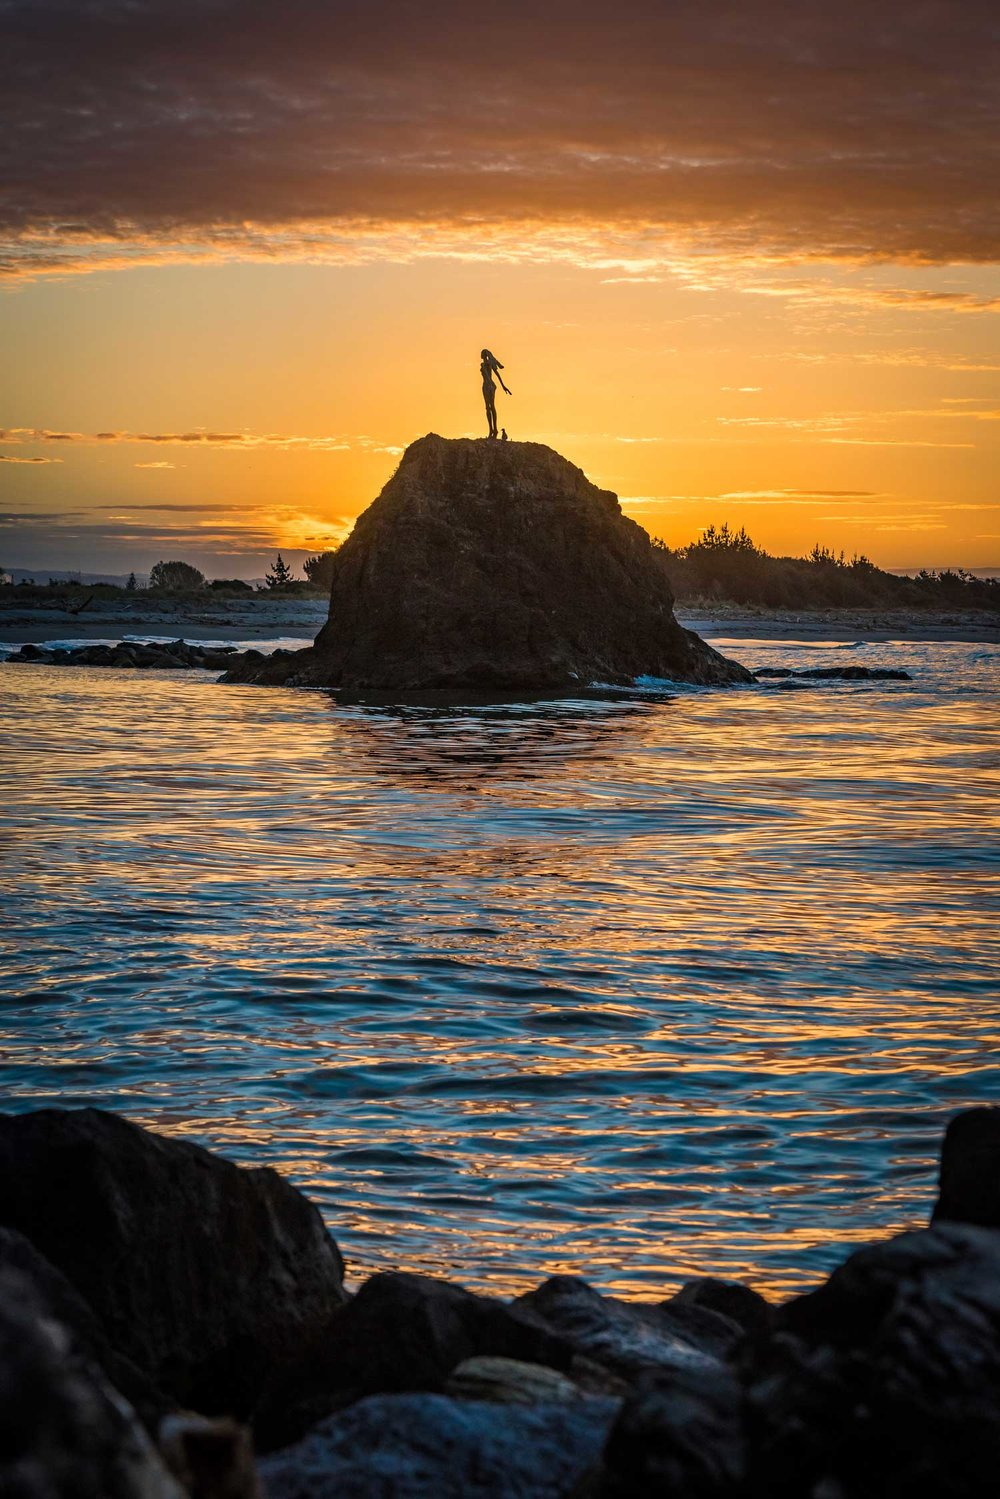 The Lady on the Rock is a popular sight in Whakatane  Photos:  James Stanbridge